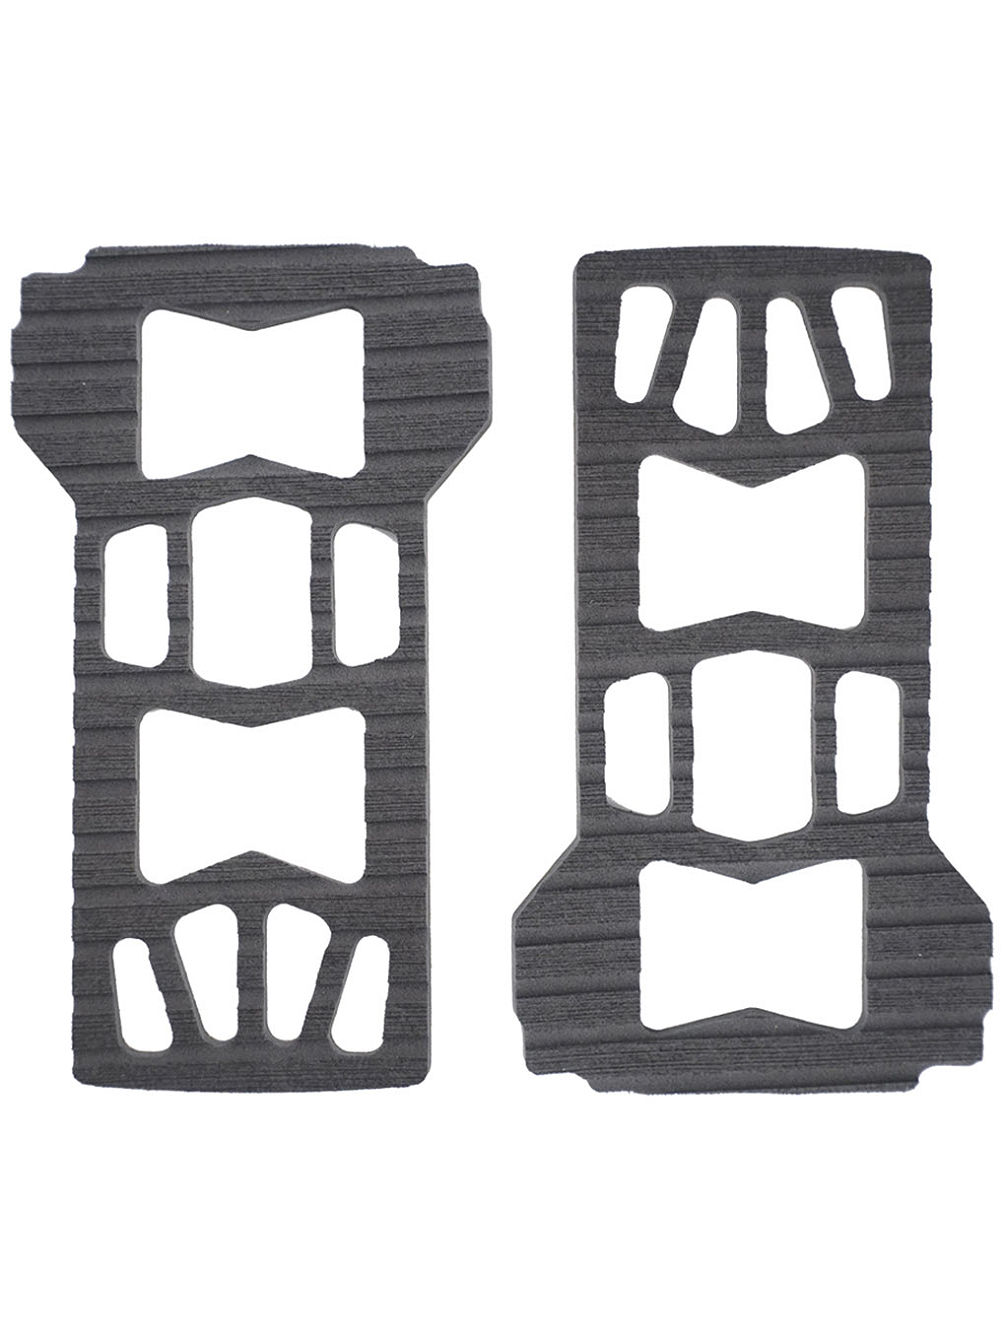 Baseplate Padding Kit Cutout